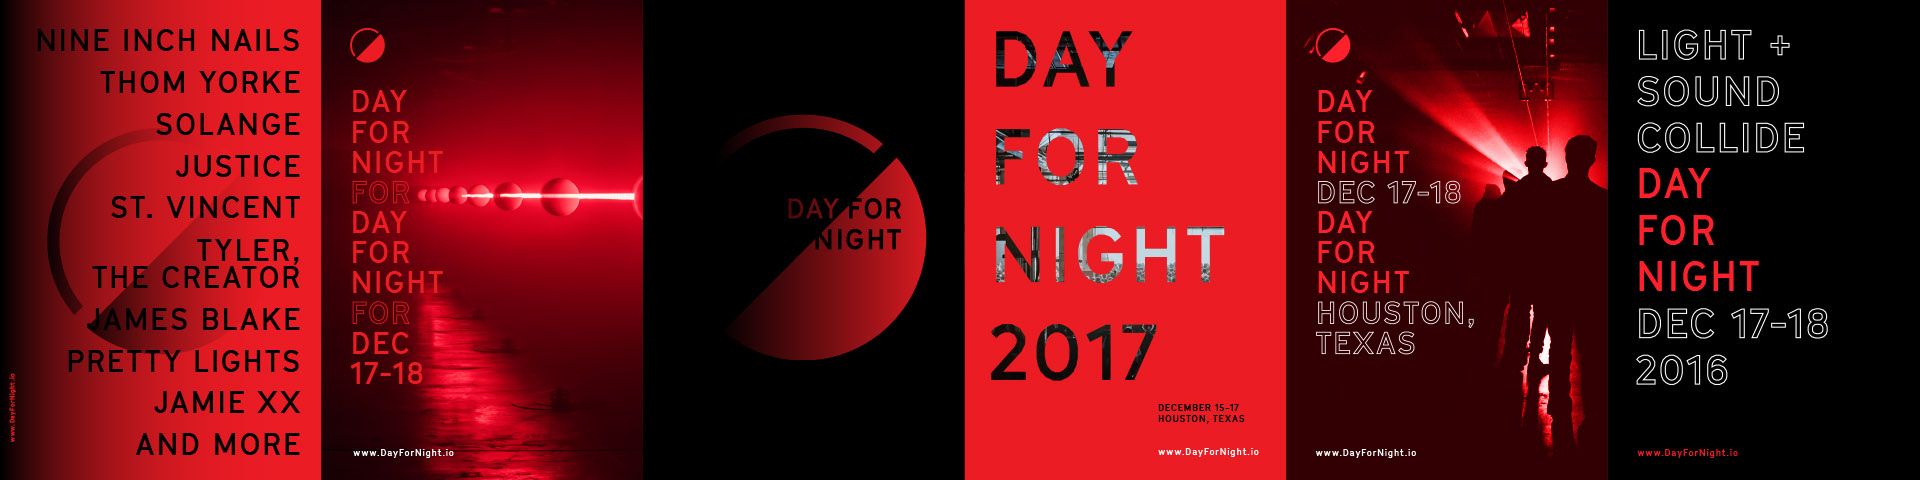 Day for Night Festival logo posters and branding